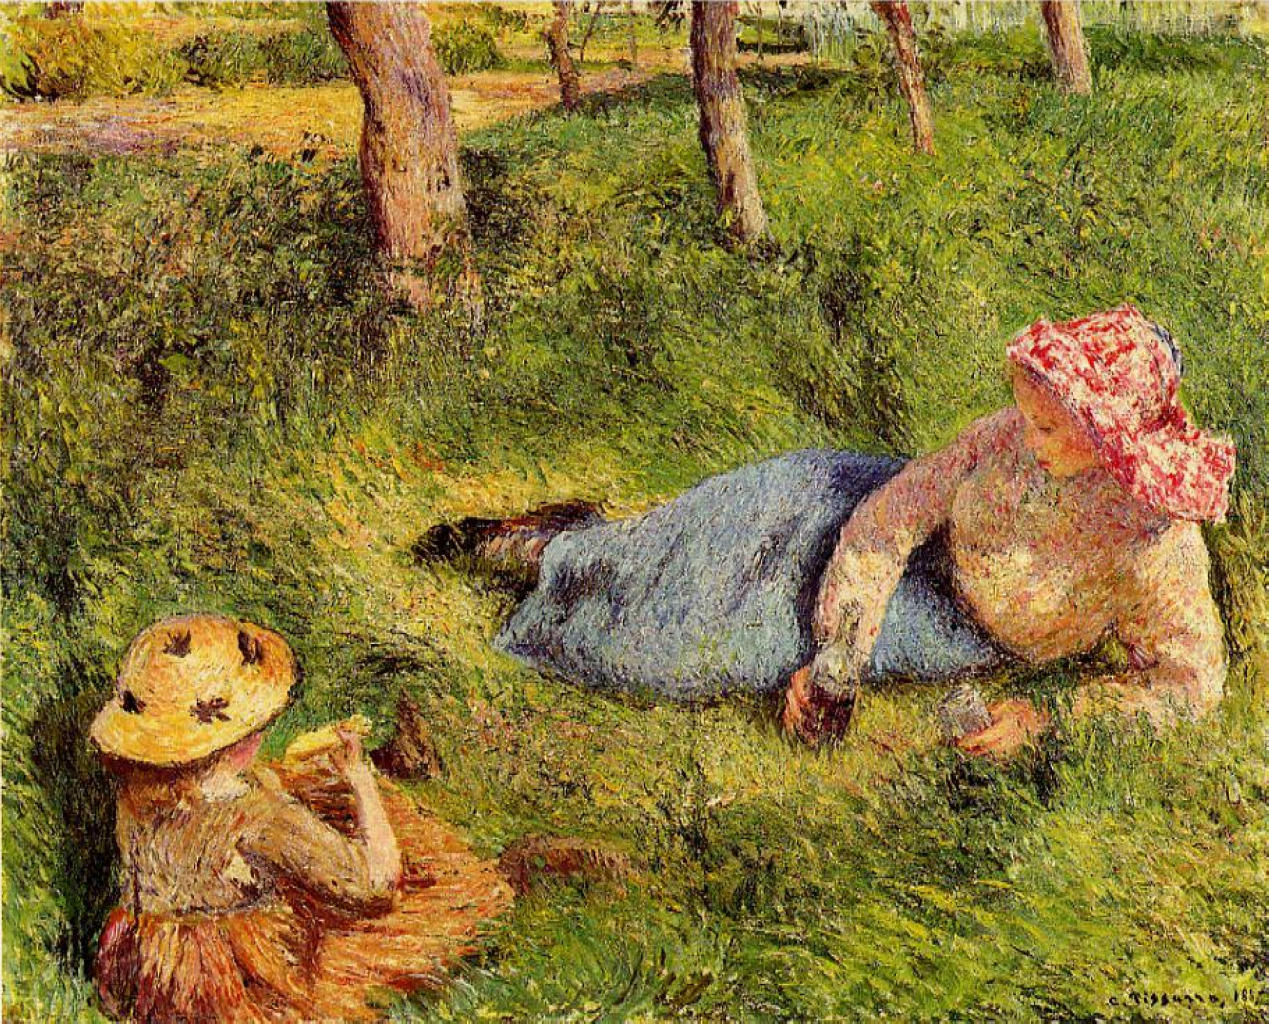 The Snack, Child and Young peasant at Rest by Camille Pissarro, 1882